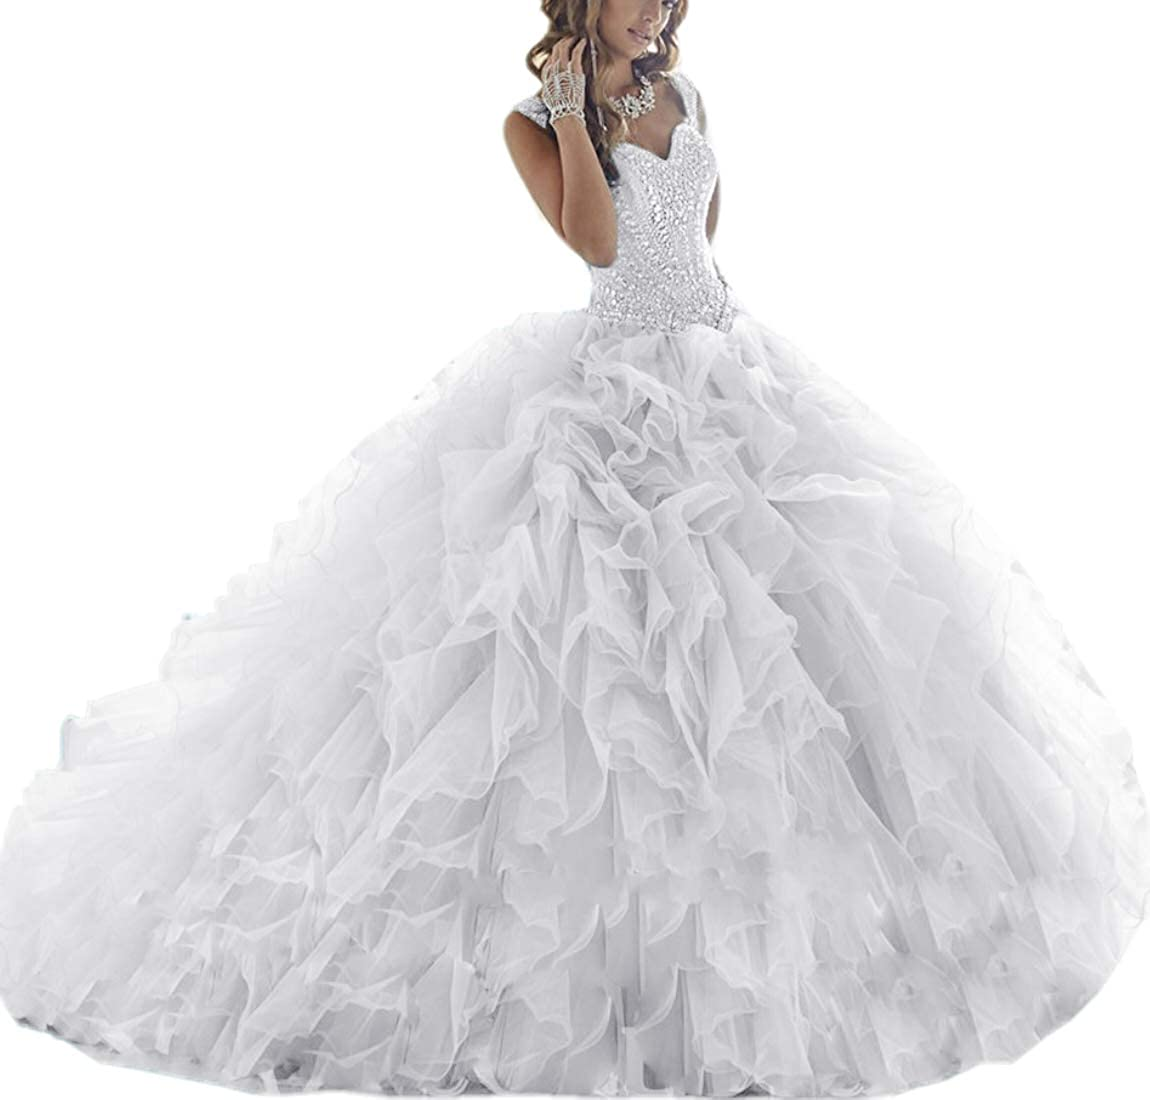 White APXPF Women's Crystals Beaded Organza Ruffle Quinceanera Dress Sweet 16 Ball Gown Prom Dress